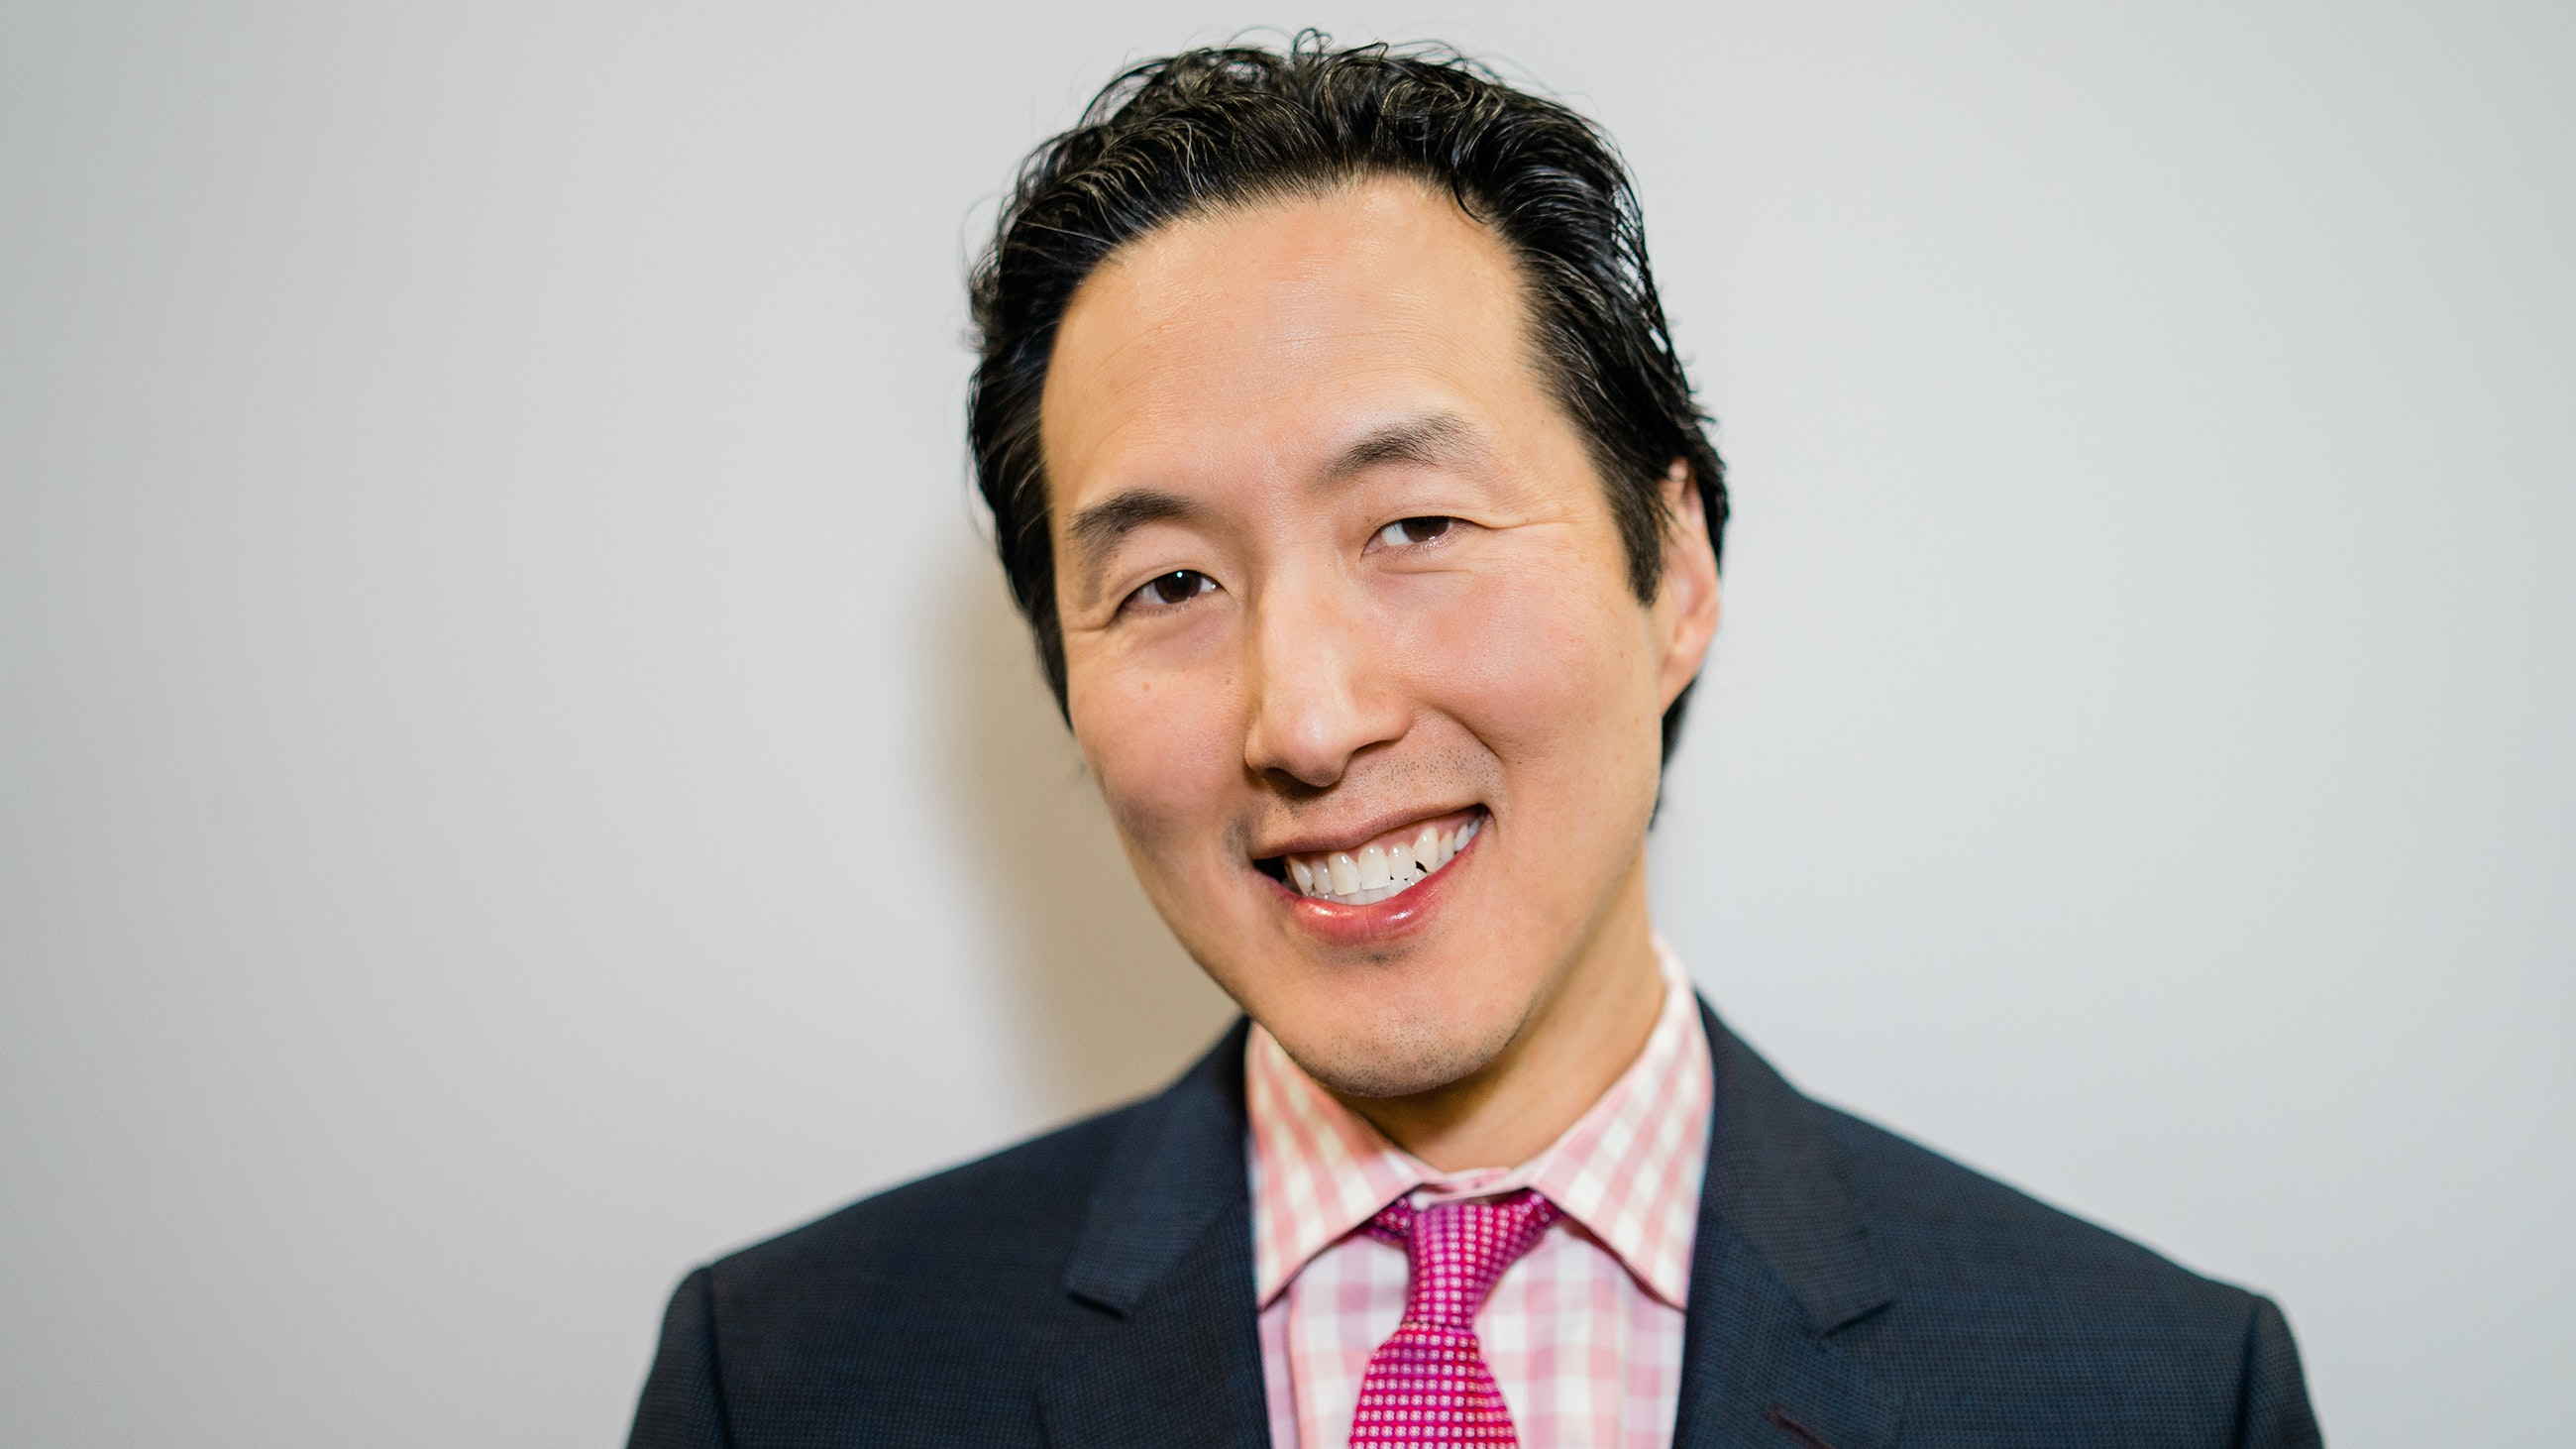 Dr. Anthony Youn on Holistic Plastic Surgery, Childhood Insecurities, and the Power of Social Media